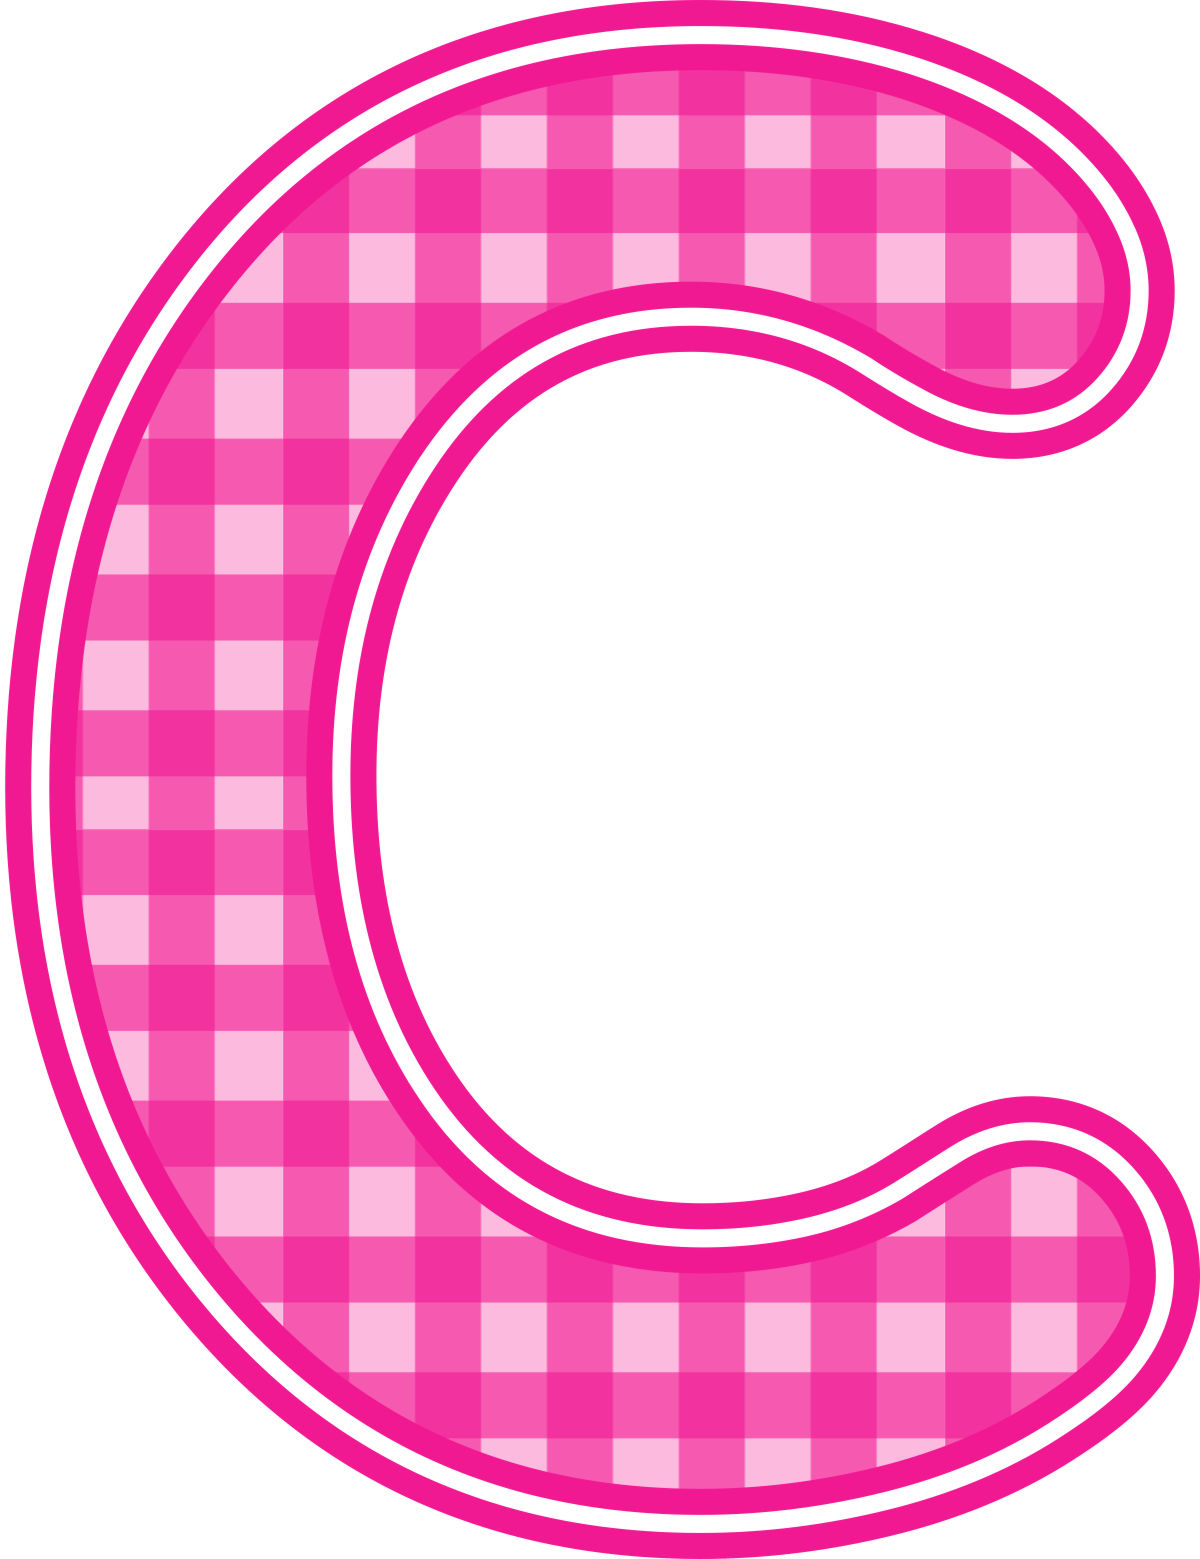 The Letter C Clipart Color 20 Free Cliparts